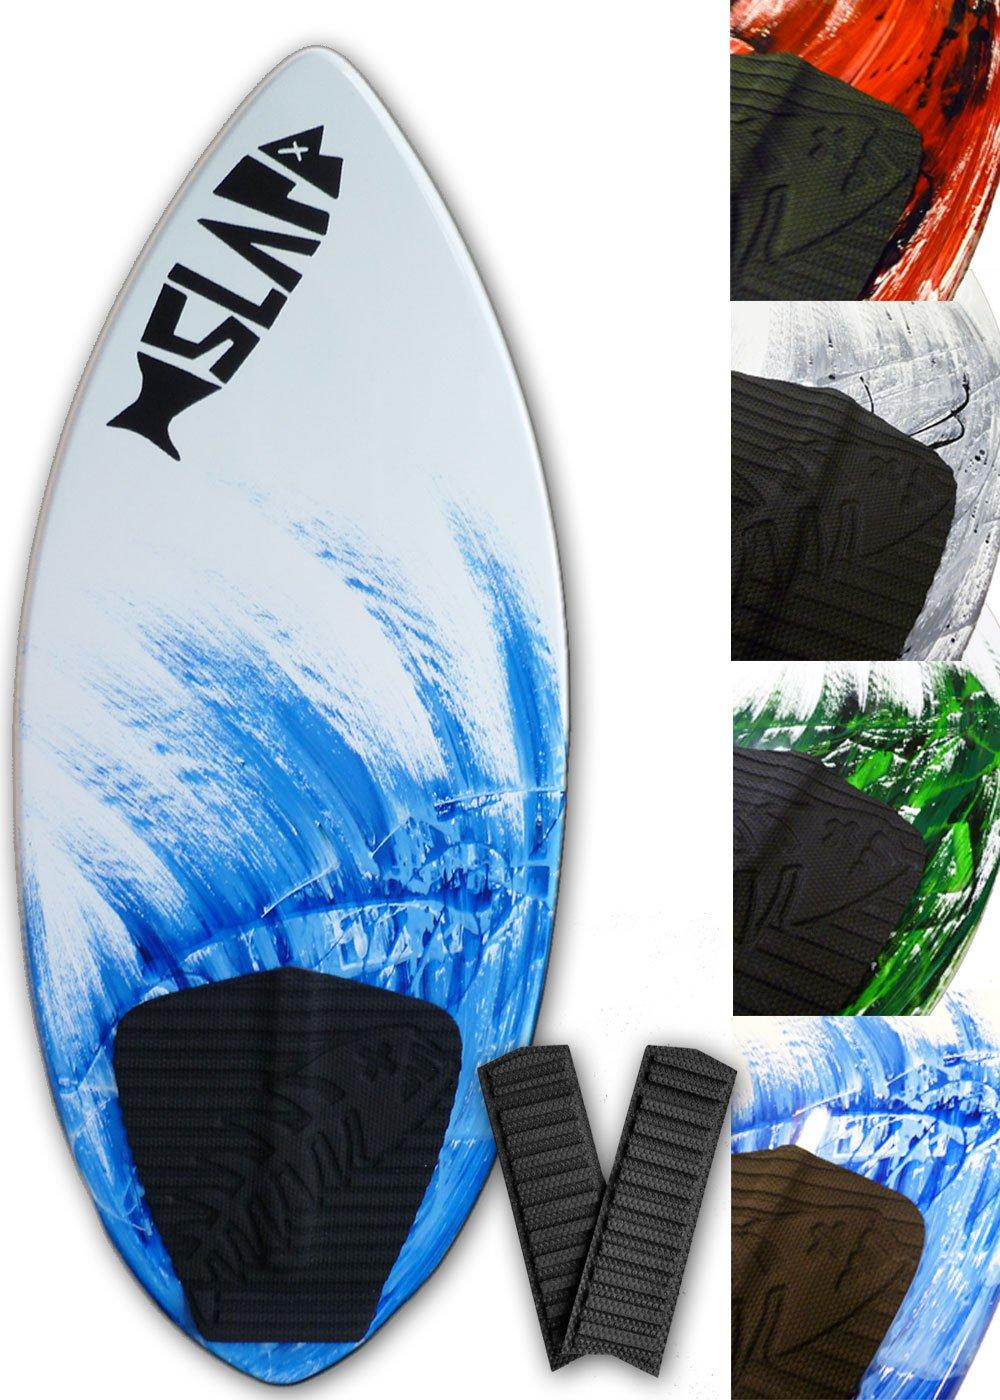 4 Colors 48 with Traction Deck Grip Slapfish Skimboards Fiberglass /& Carbon Riders up to 200 lbs Kids /& Adults